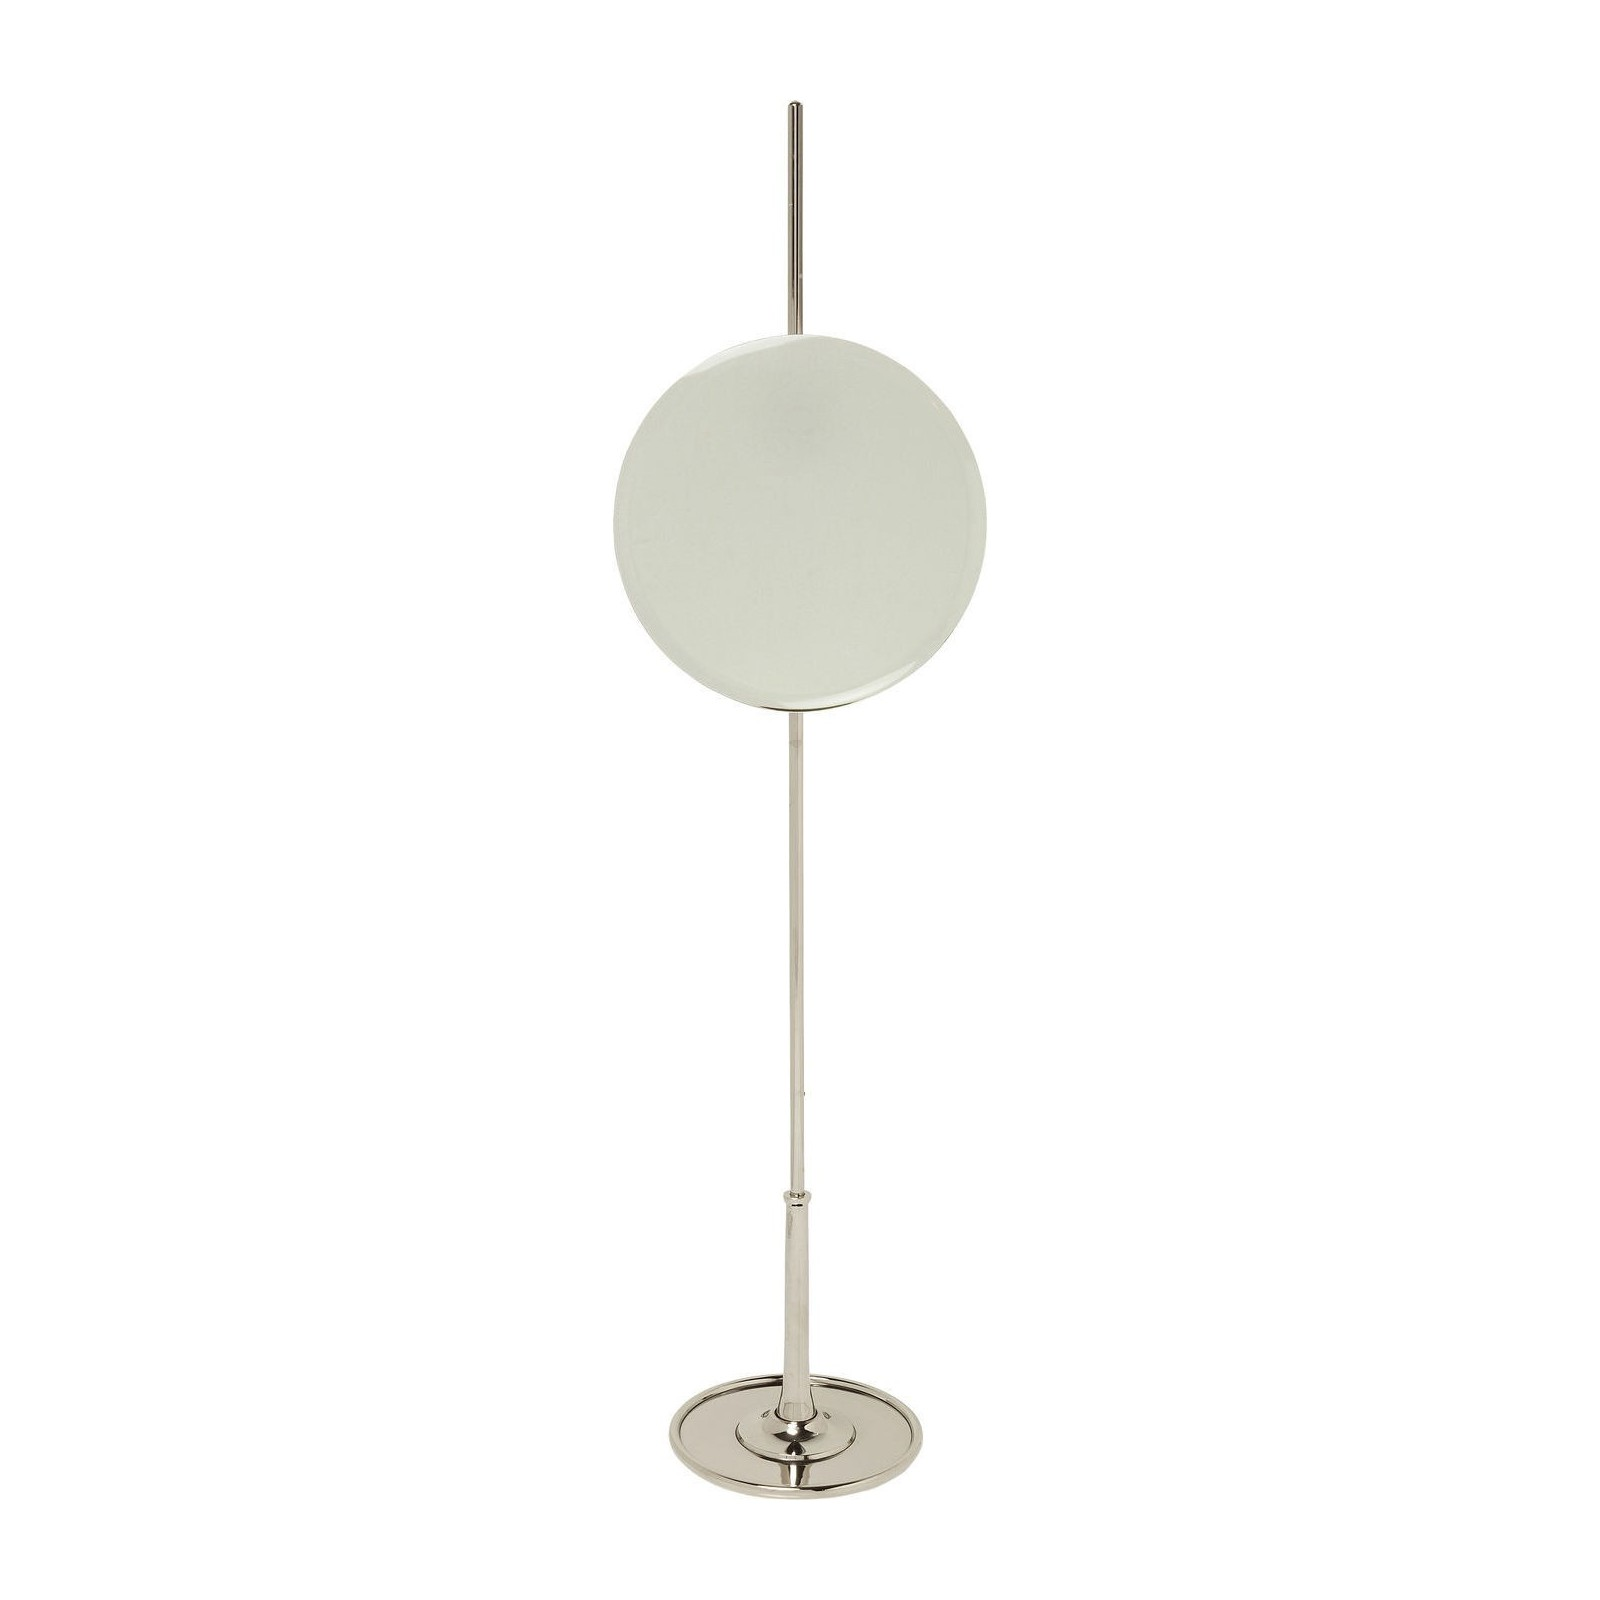 Miroir de table soho rond kare design for Miroir design rond